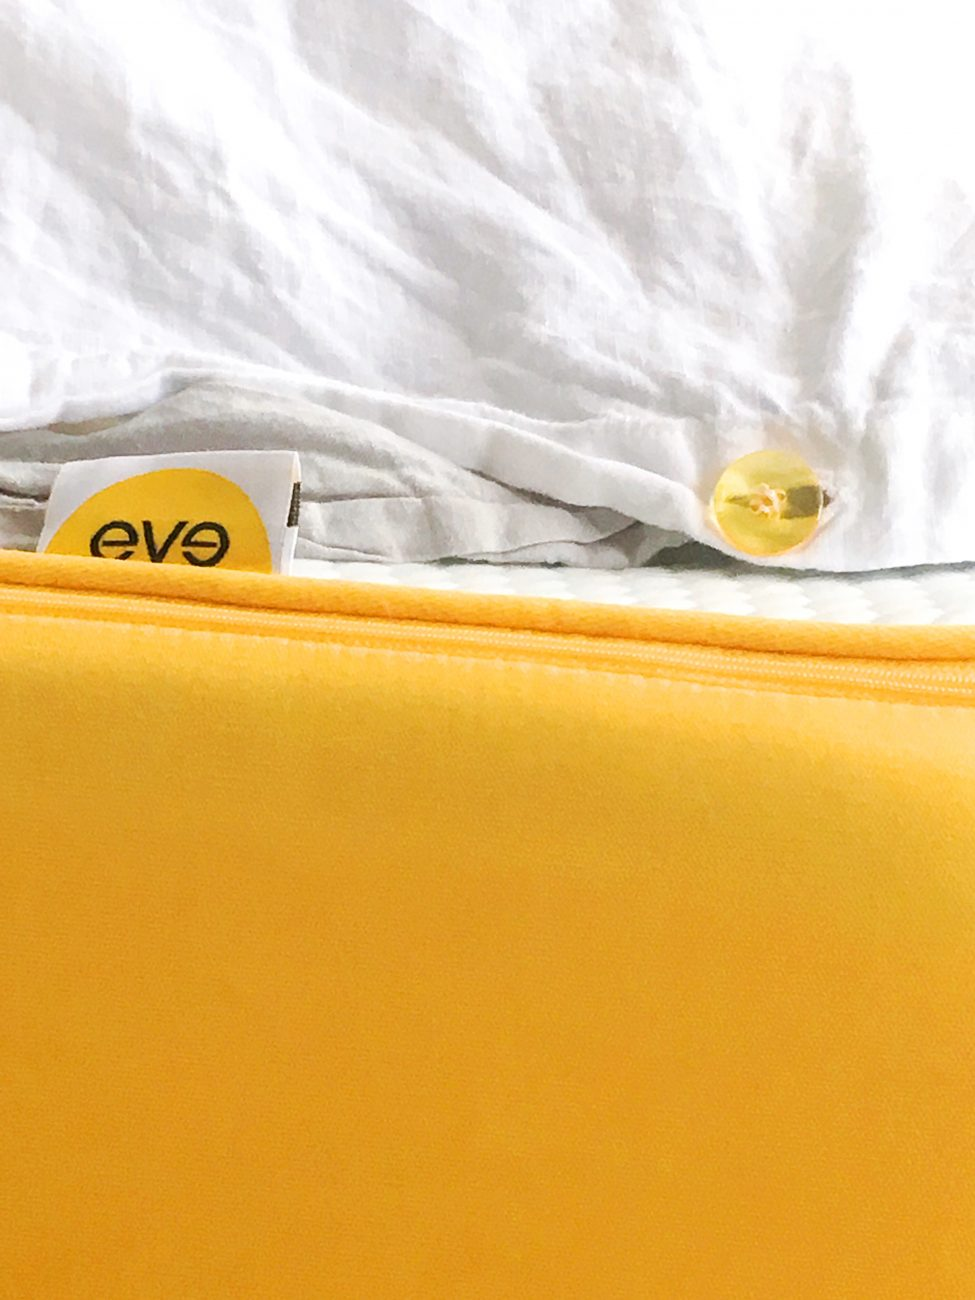 I review the Eve Mattress, is it really as amazing as everyone claims it is? Read on to hear my honest opinion as well as everything you never need to know when buying a mattress...